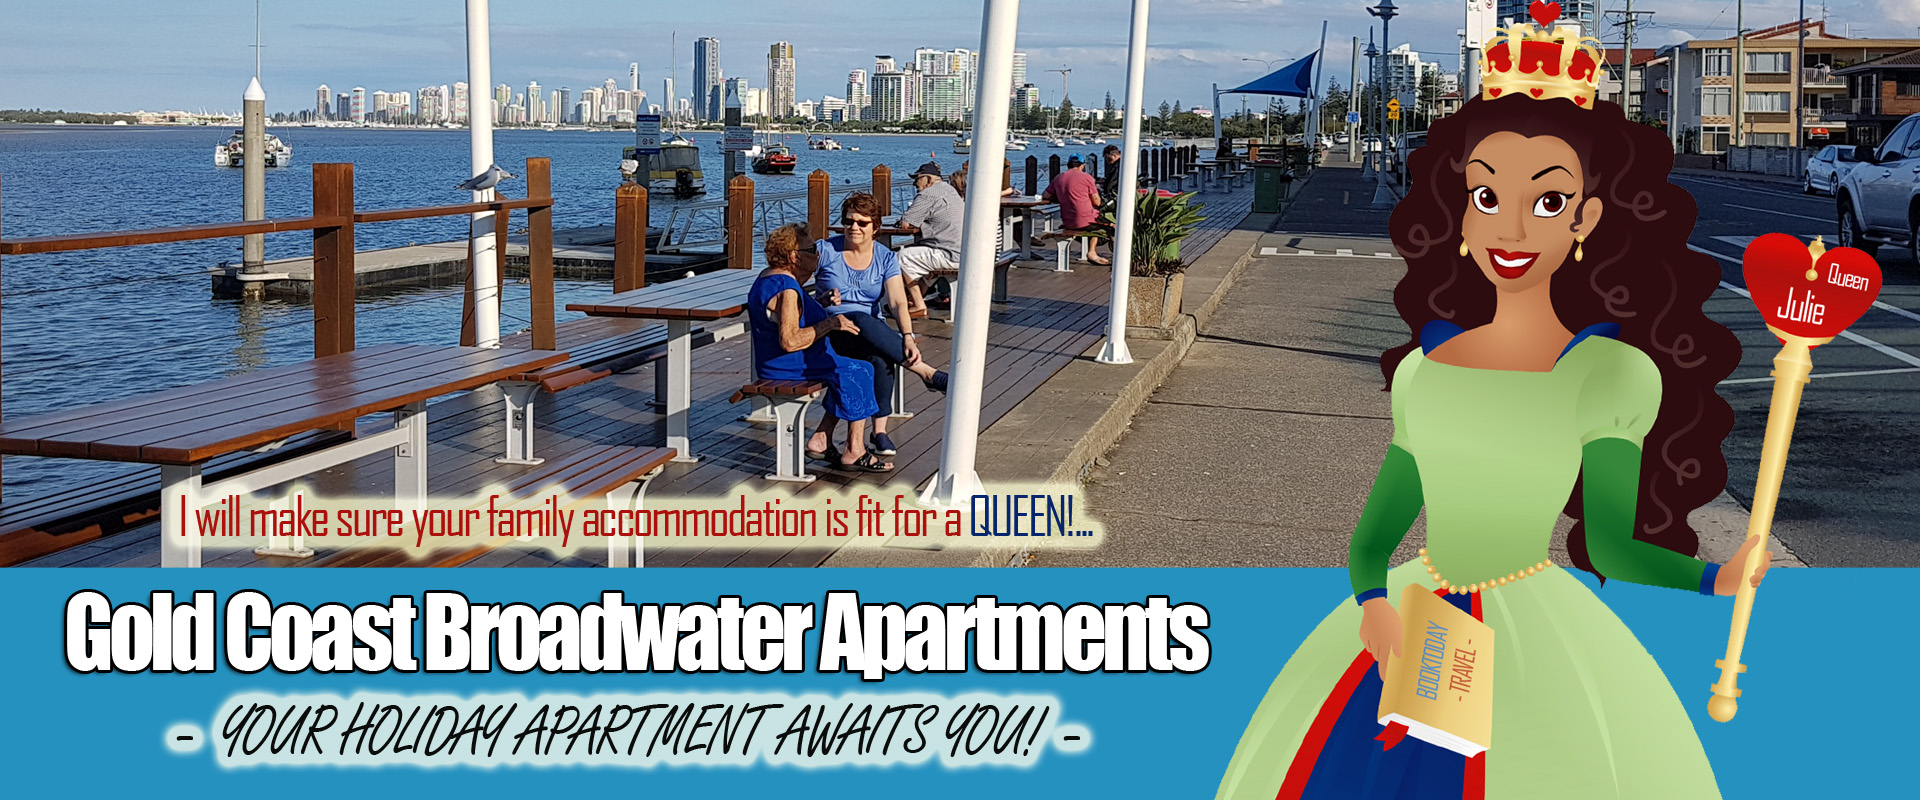 Broadwater Accommodation